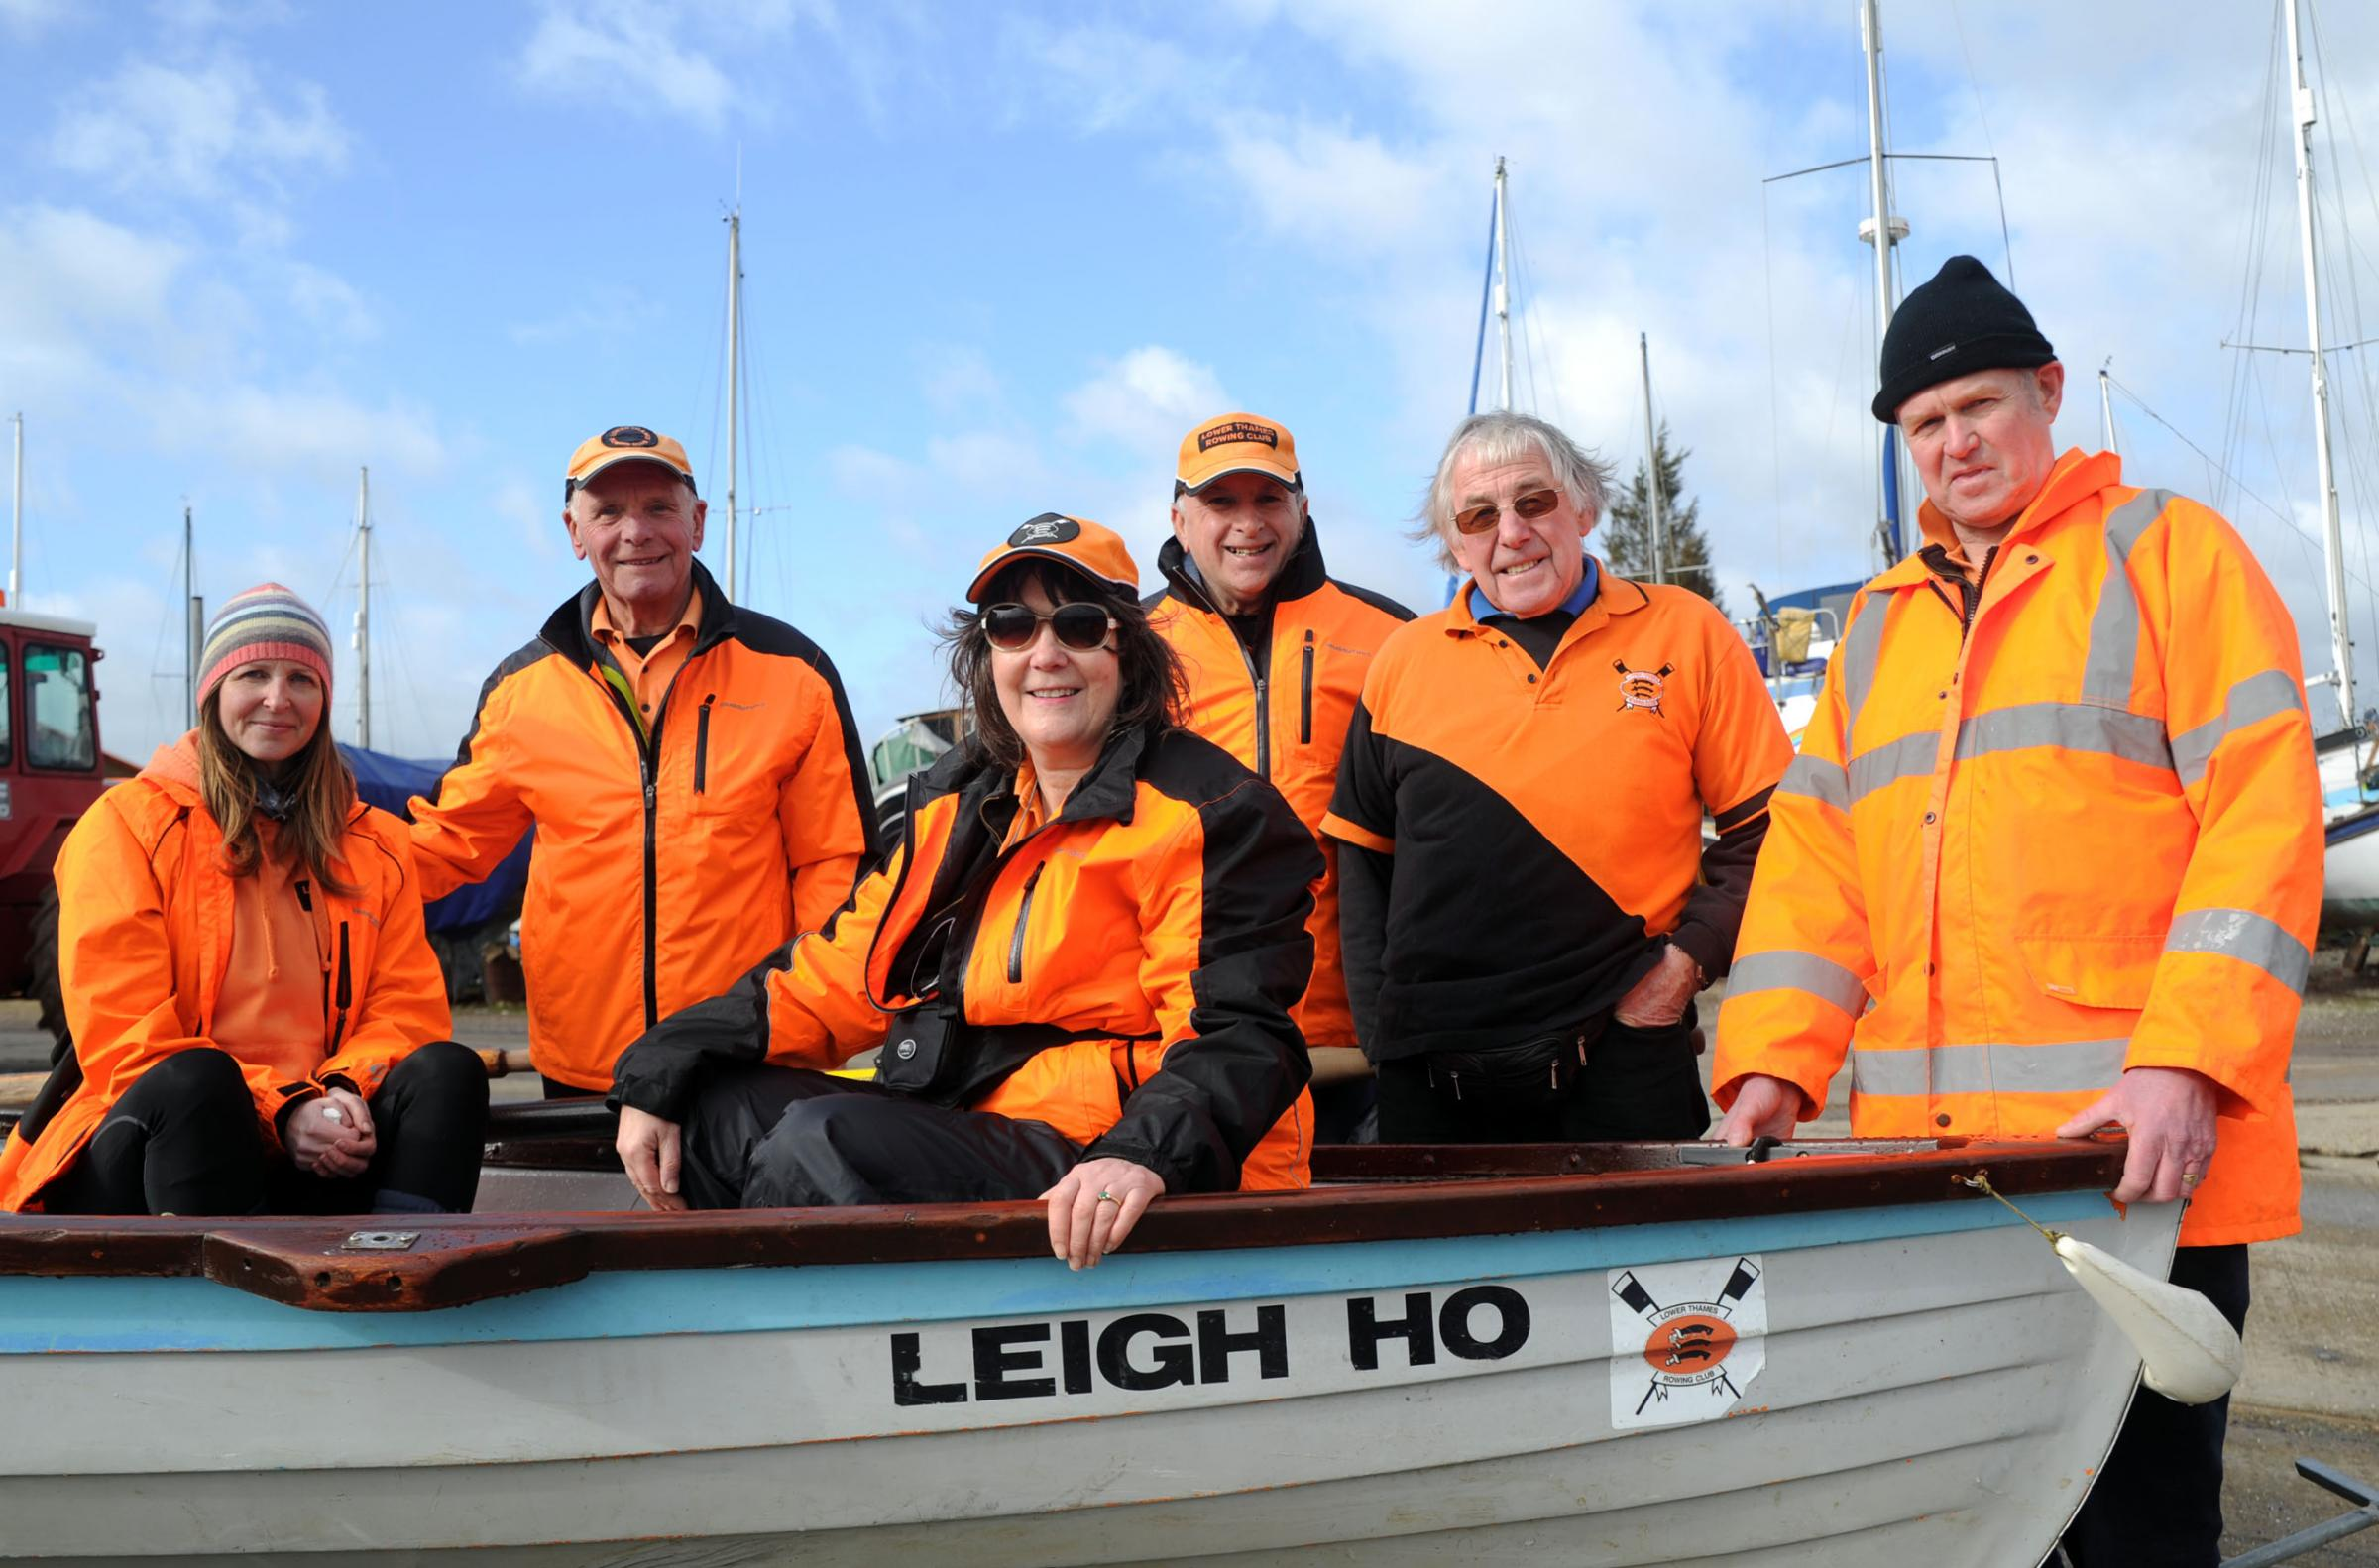 Hoping for a new boat house – Laura Dunmow, Dave Allen, Jackie Jackson-Smith, Norman Beswarick, Ron Sverdloff and Chris Green